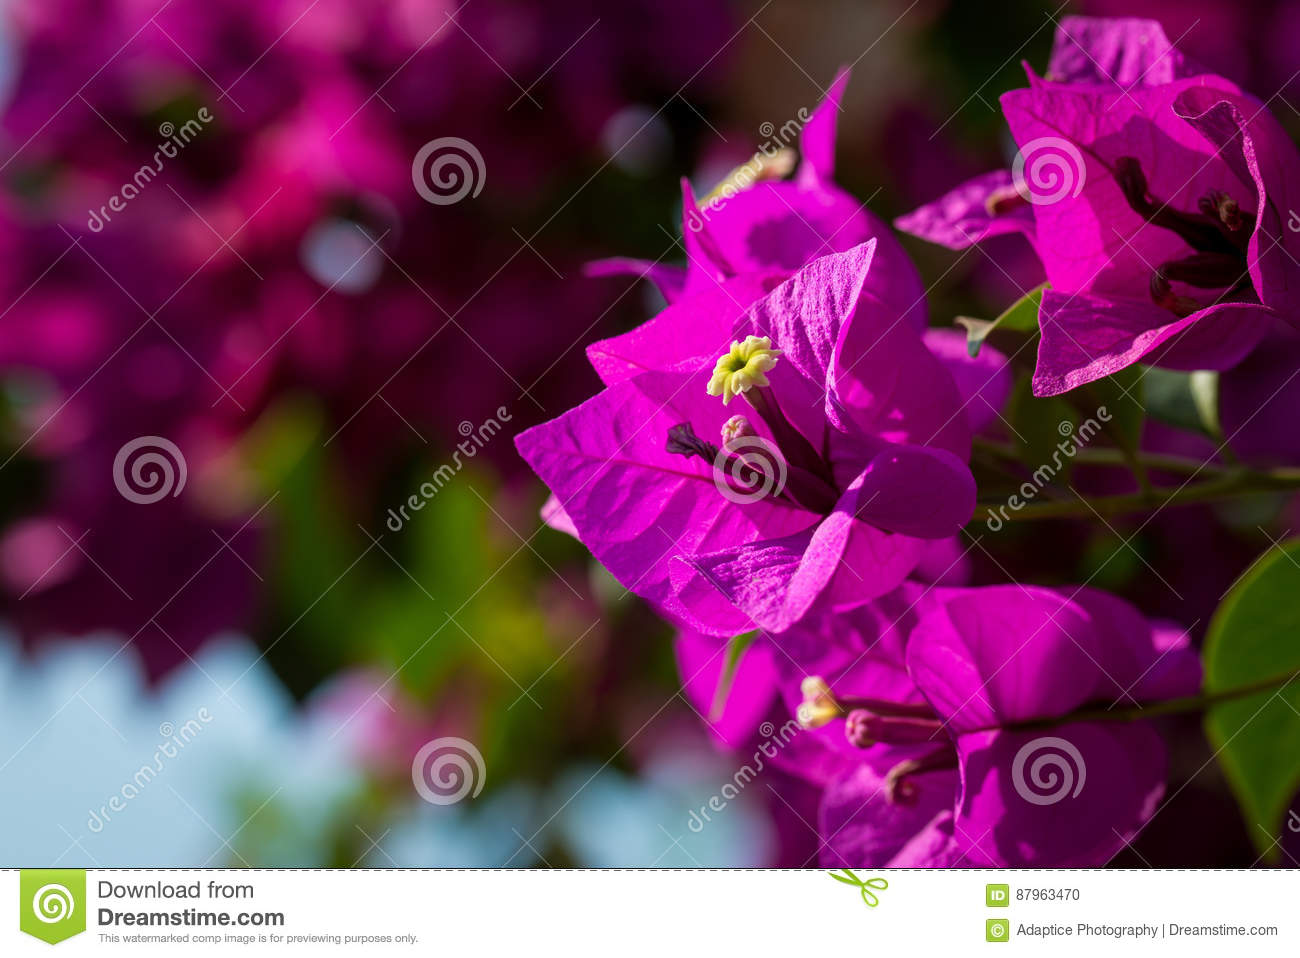 Beautiful magenta bougainvillea flowers closeup. Vivid colors and blue, green soft blurry background.